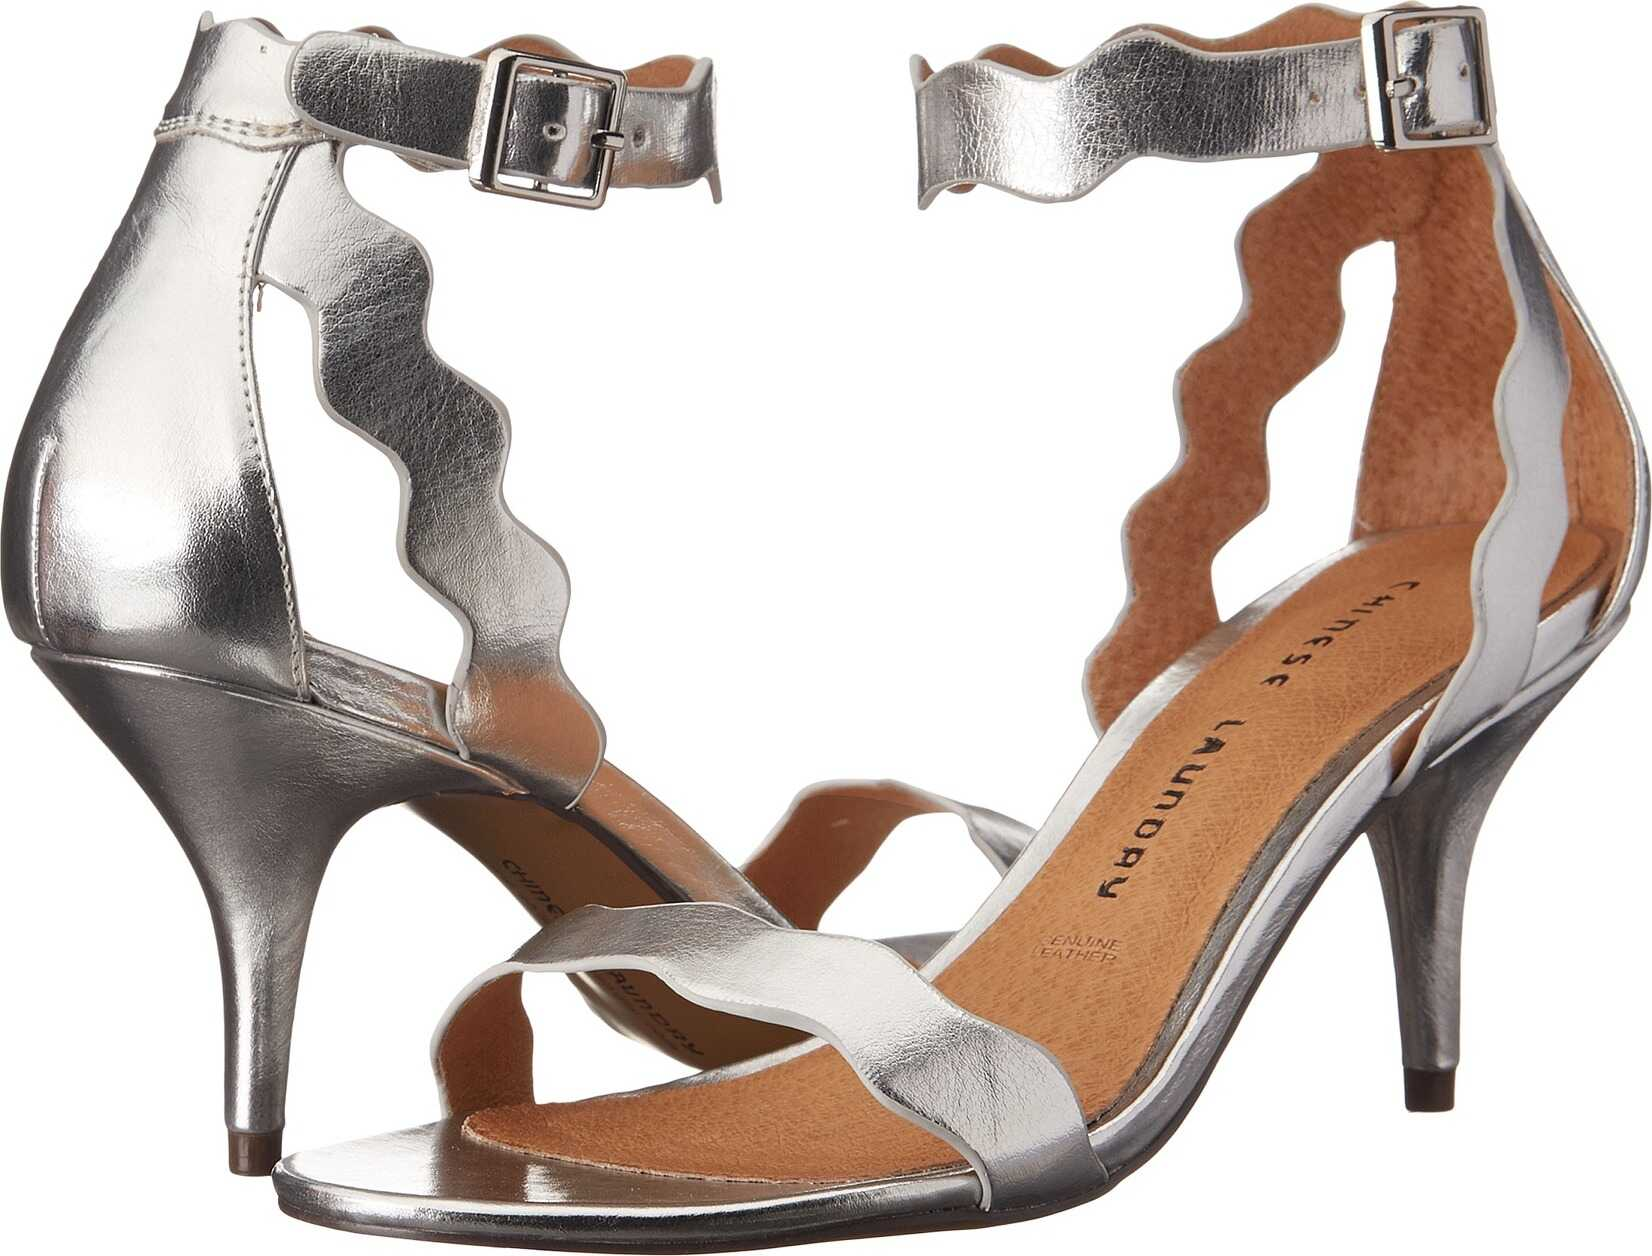 Chinese Laundry Rubie Scalloped Sandal Silver Metallic